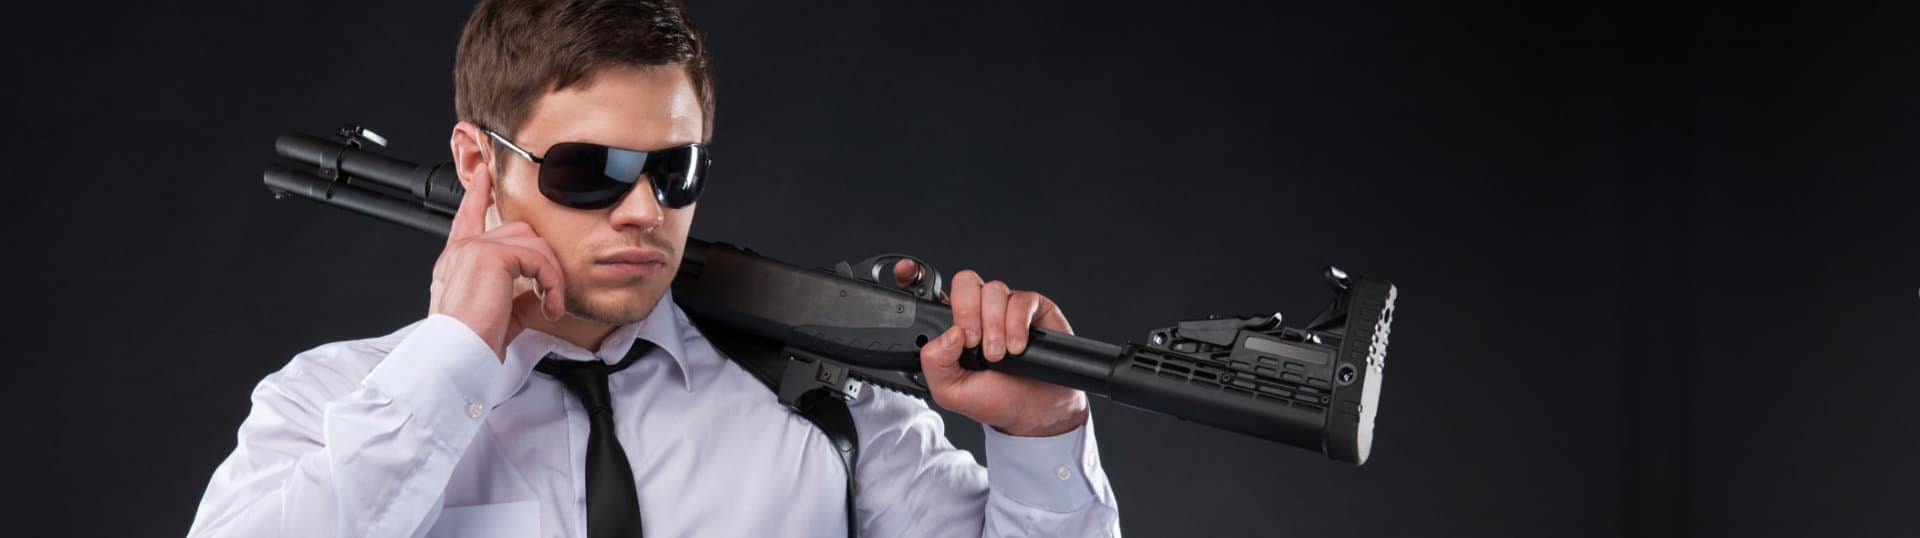 Confident young man in shirt and tie holding gun